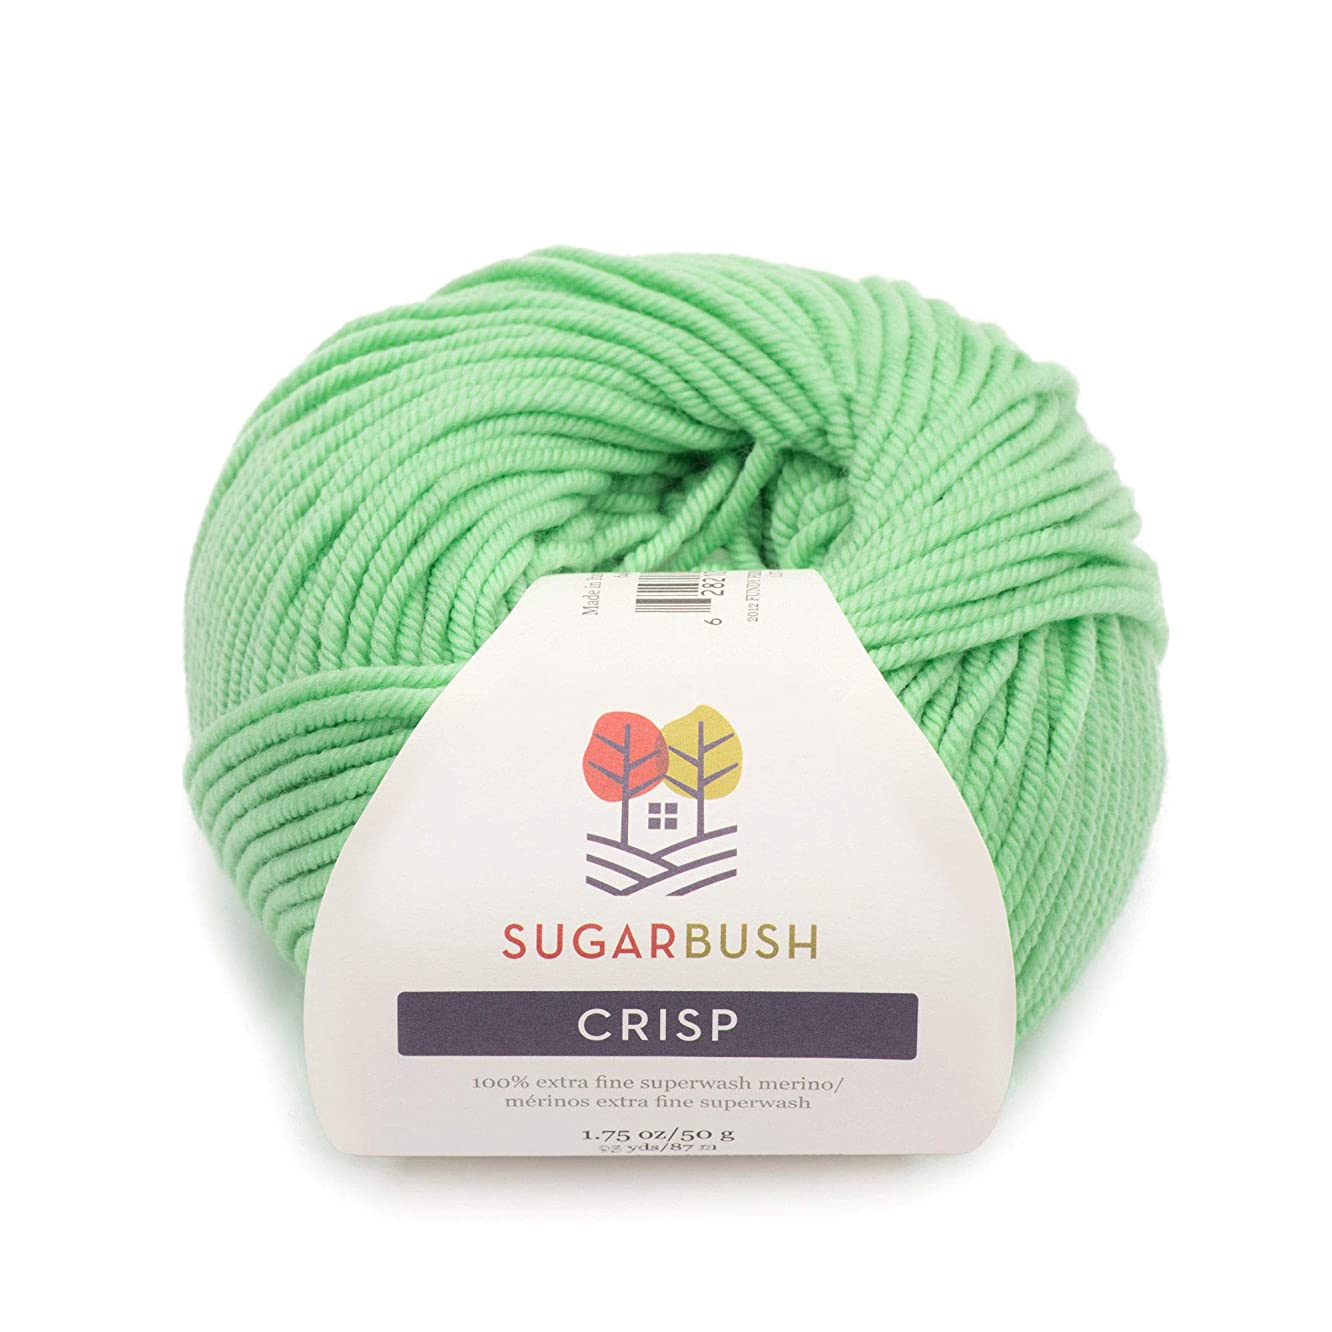 Sugar Bush Yarn Crisp Double Knitting Weight, Fundy Fern